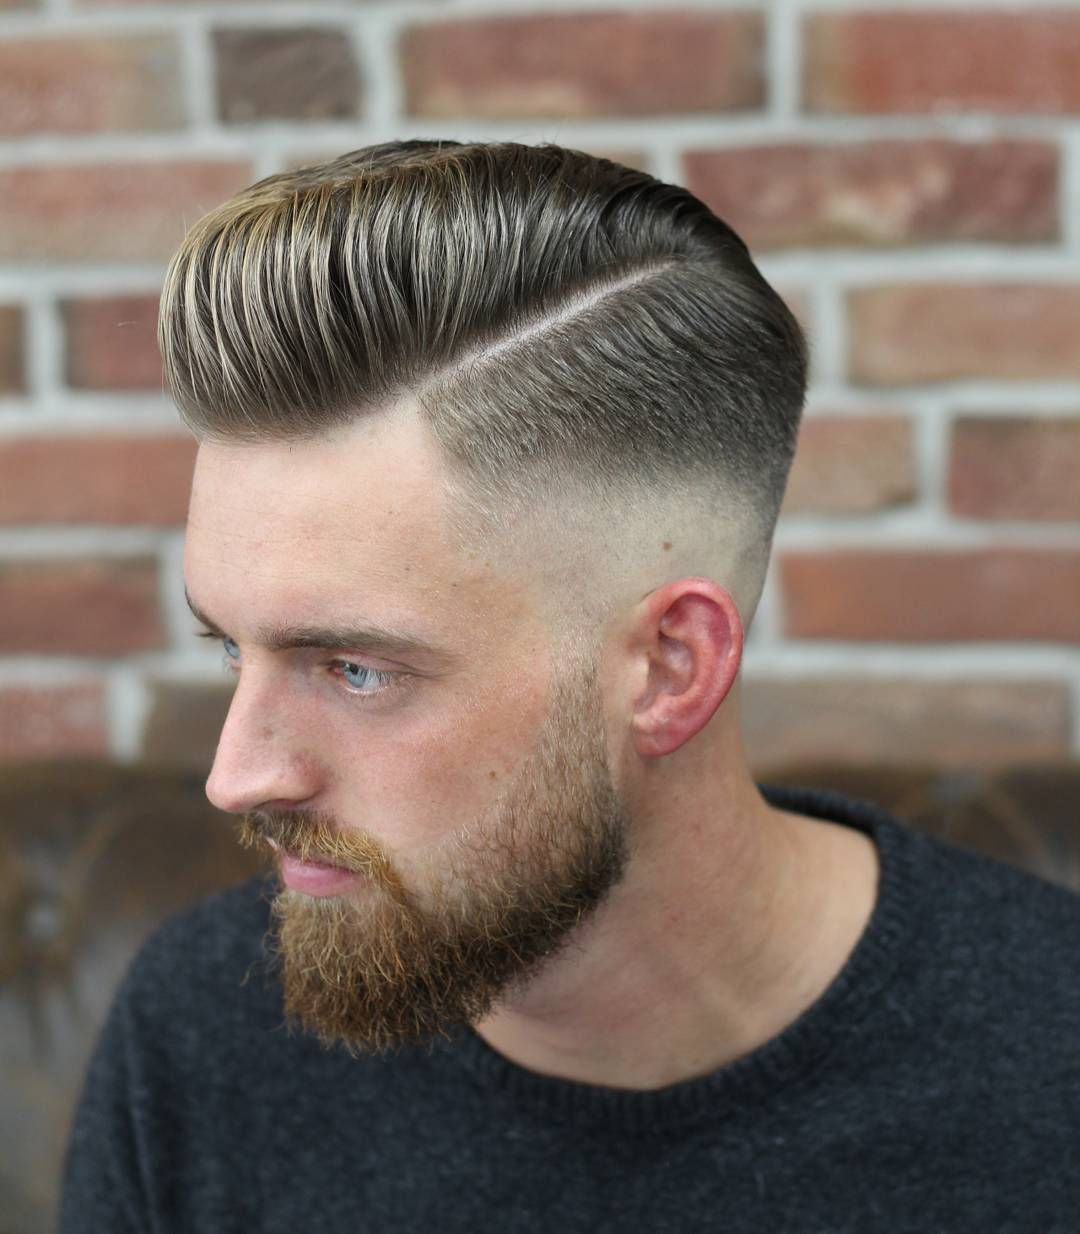 barber shop hair styles 27 cool hairstyles for barber shop 6610